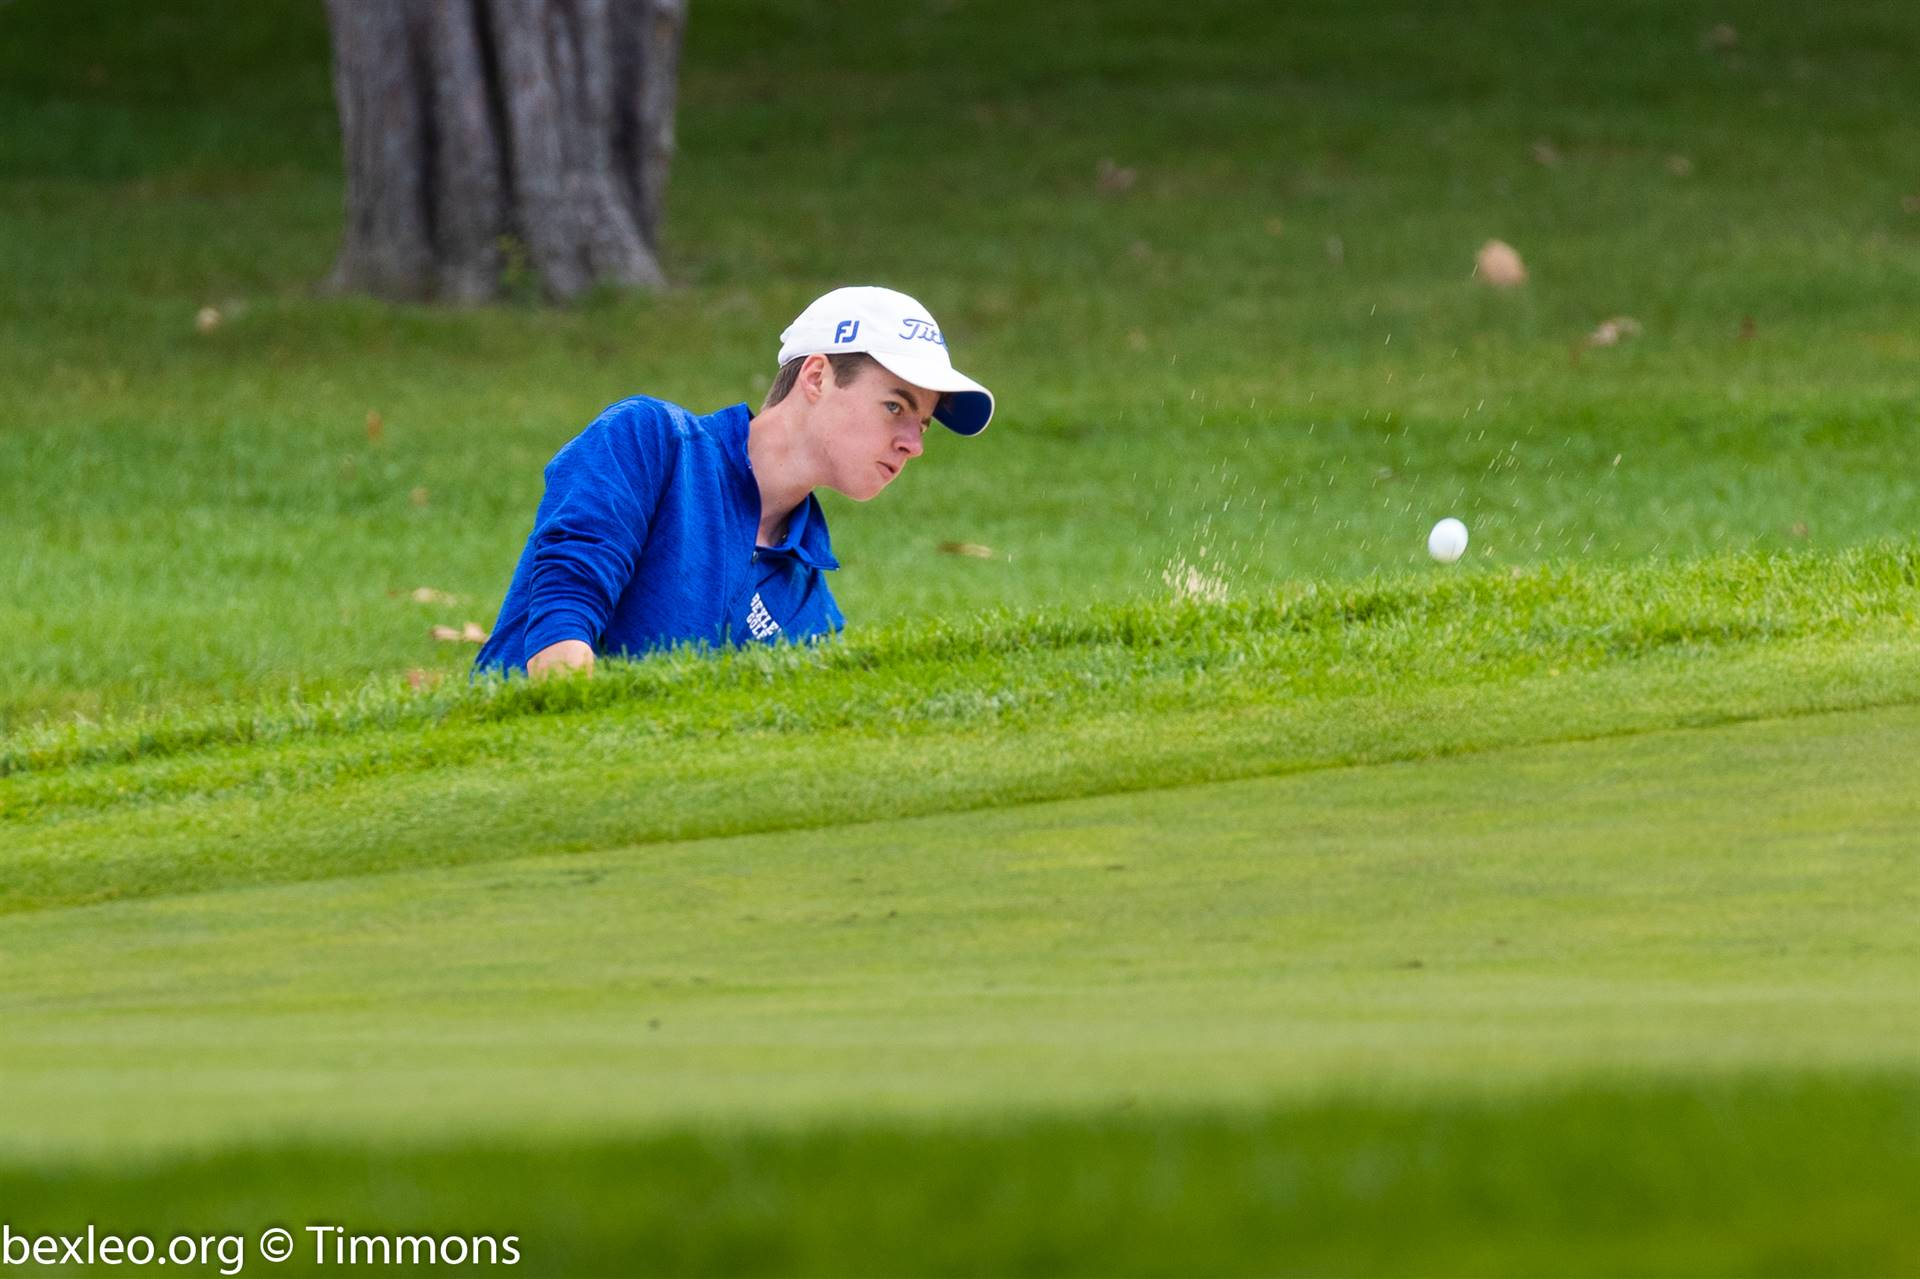 Senior Trevor Binau won his second individual state golf title Oct. 12-13 at the OSU Scarlet Course.